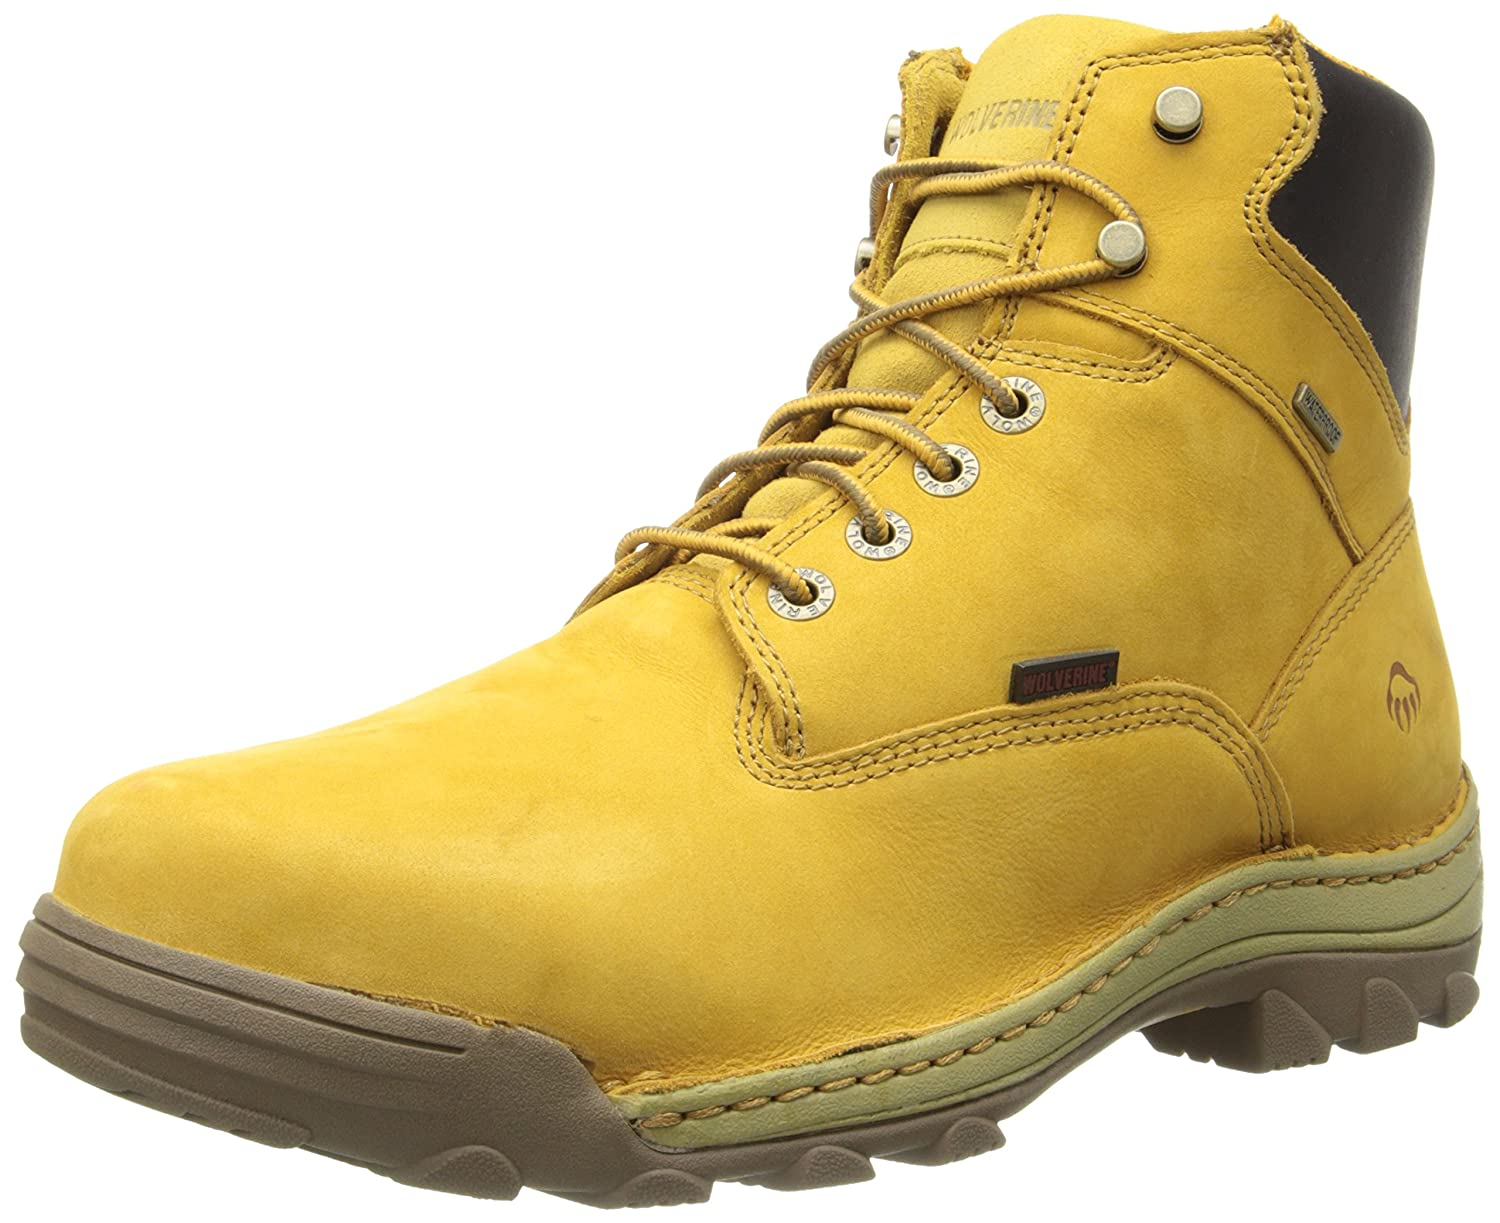 Wolverine Men's Dublin W04780 Waterproof Boot W04780 Dublin-M